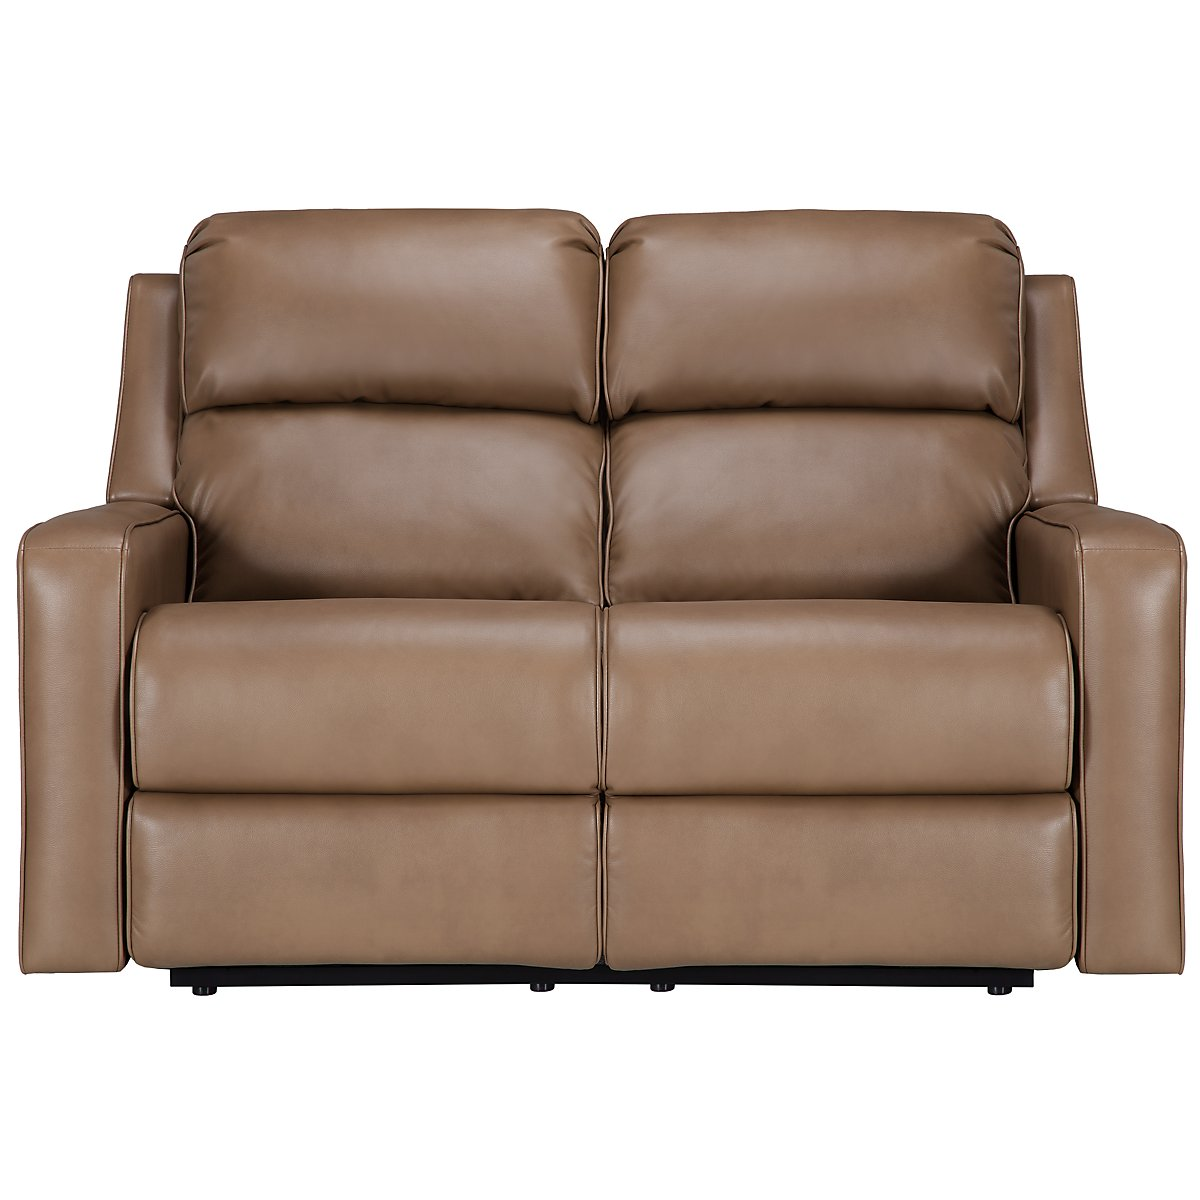 Rocco Dark Taupe Microfiber Power Reclining Loveseat